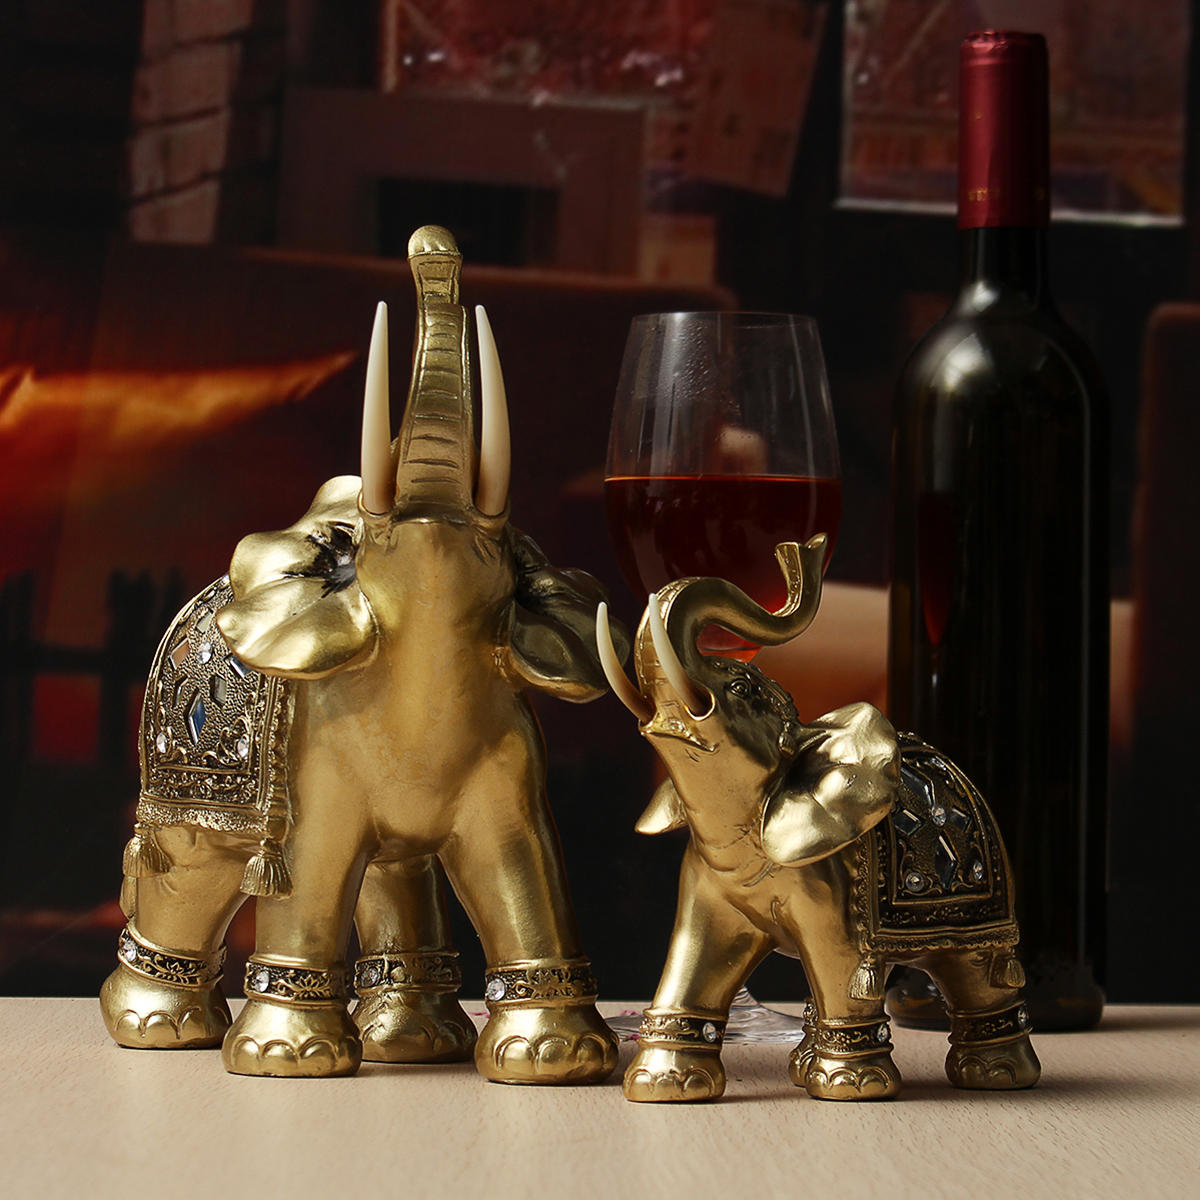 Lucky Charm Fengshui Mascot Golden Elephant Resin Mini Statue Home Desk Ornaments Gifts Home Decorations - 10